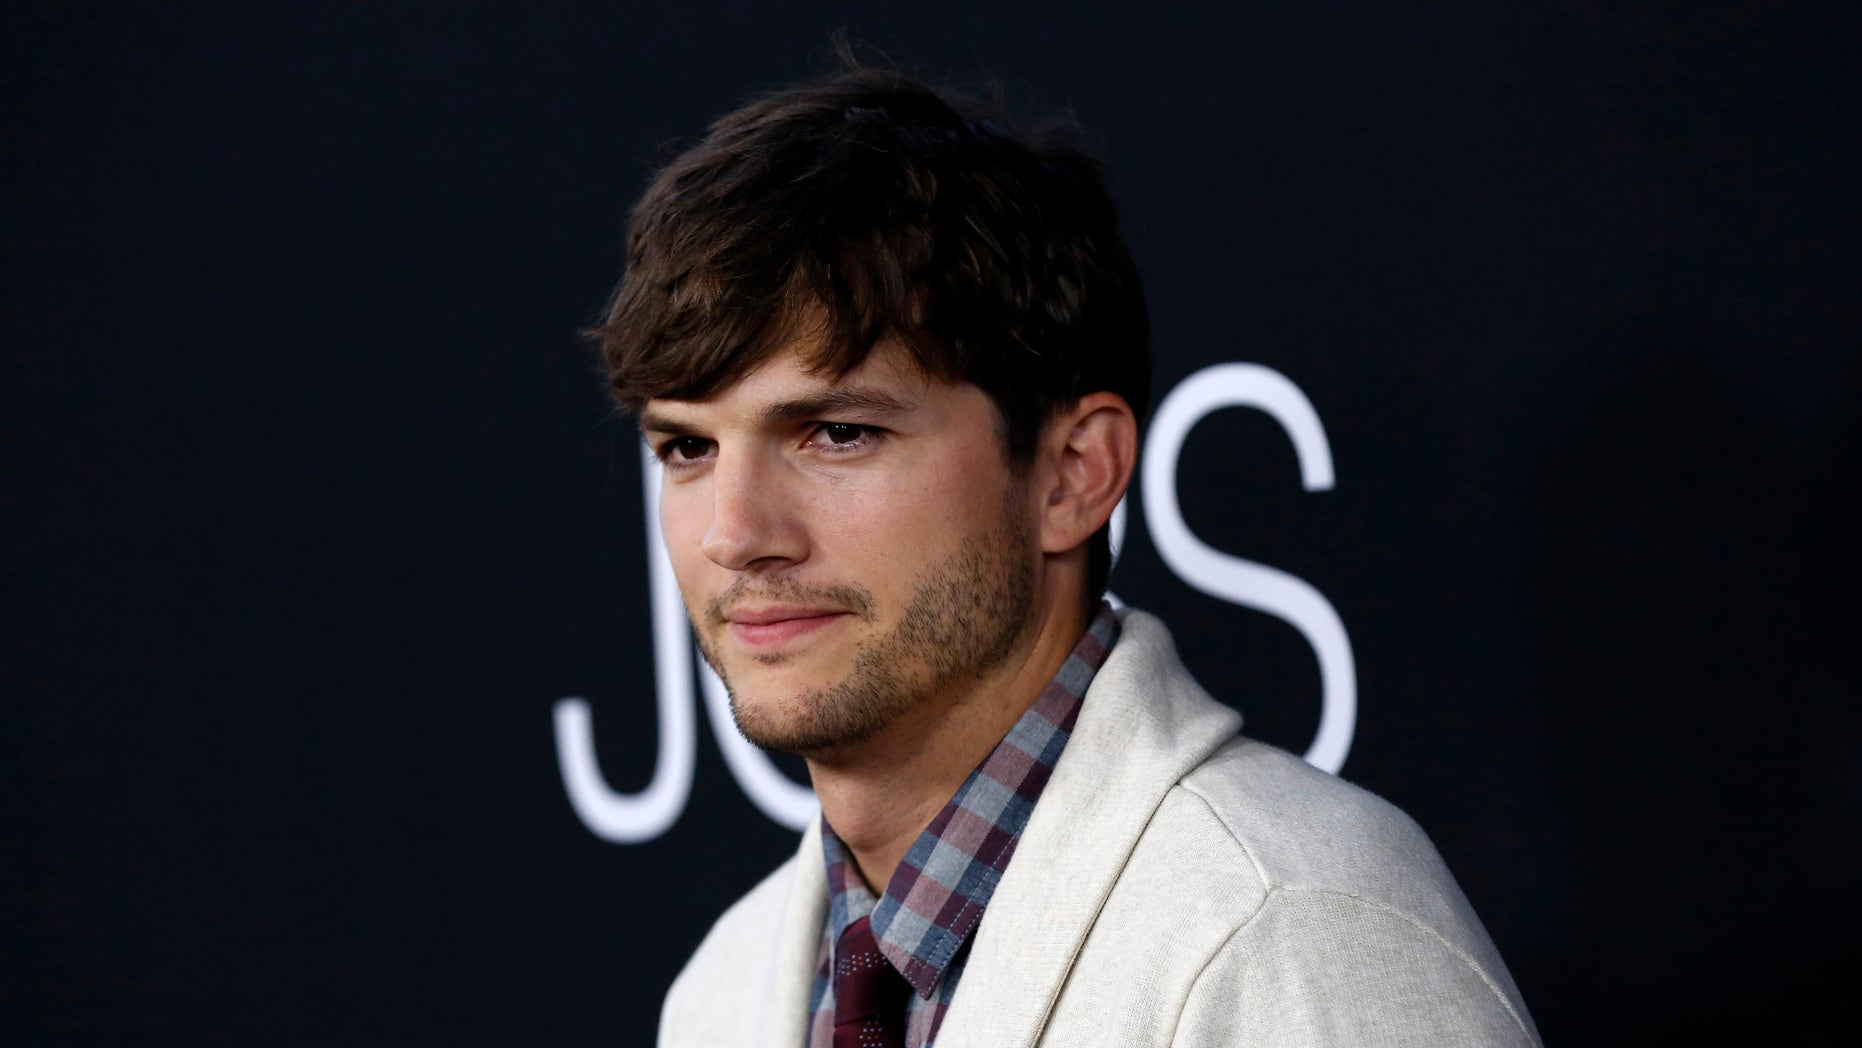 """August 13, 2013. Cast member Ashton Kutcher poses at the premiere of """"Jobs,"""" in Los Angeles, California."""